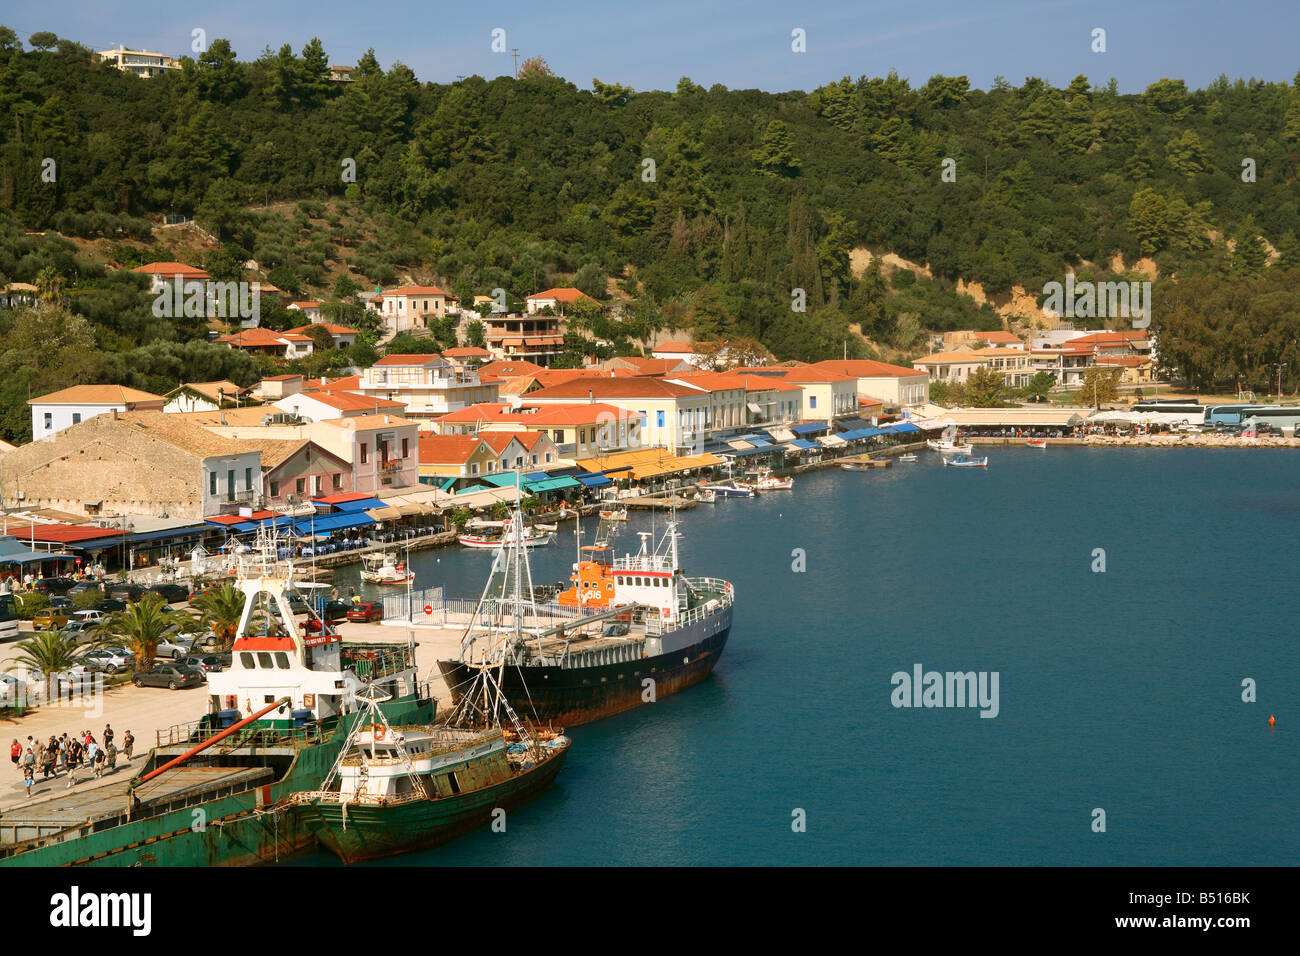 Greece Peloponnese Katakolon harbour - Stock Image